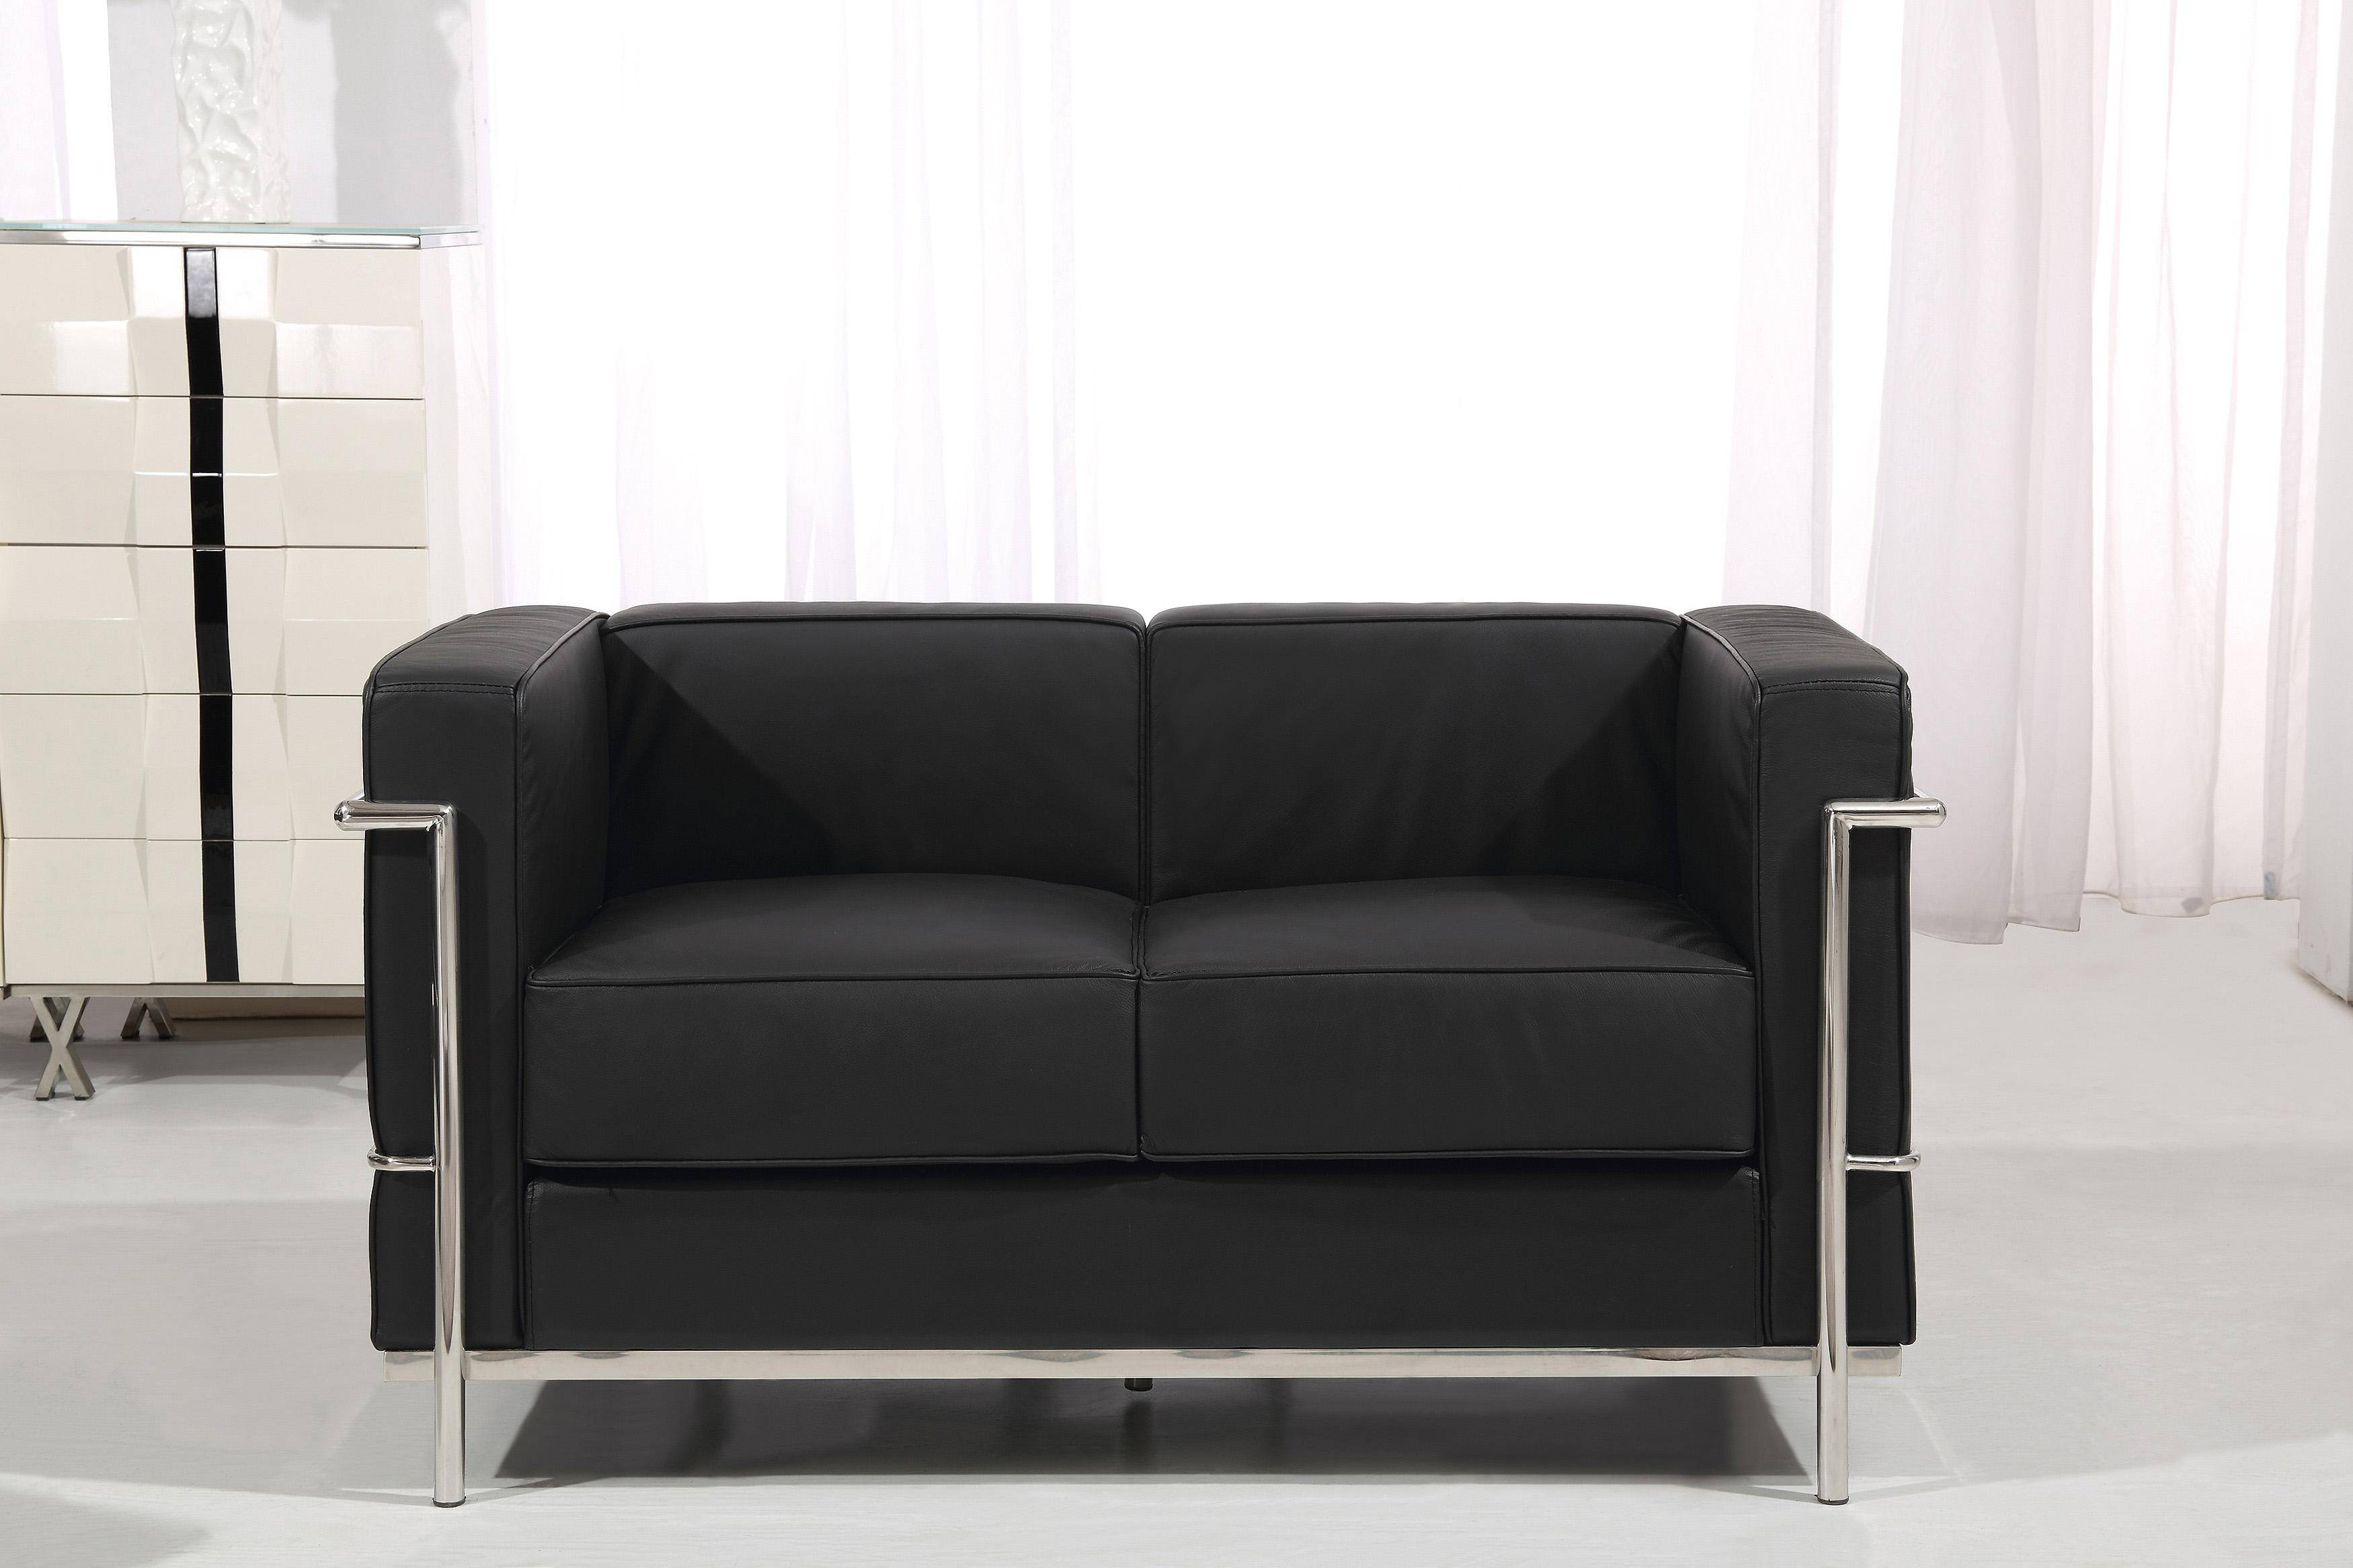 At Home Usa Nube Black Leather Living Room Sofa Set 3pcs